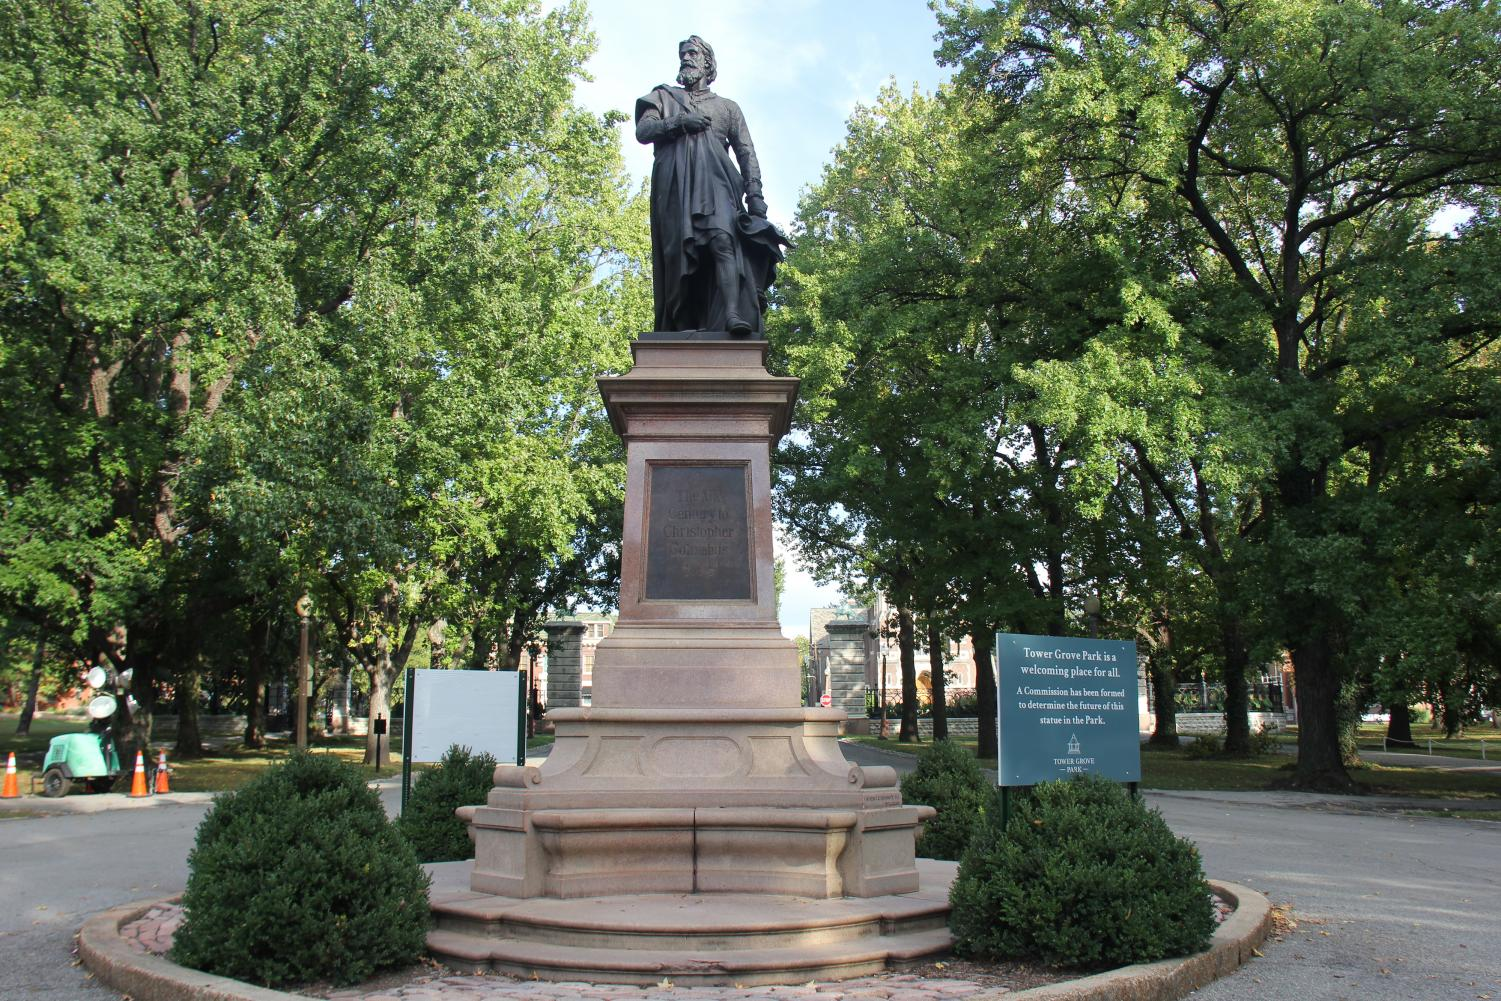 Located at the east entrance, Tower Grove Park dedicates a statue of Christopher Columbus in 1886.